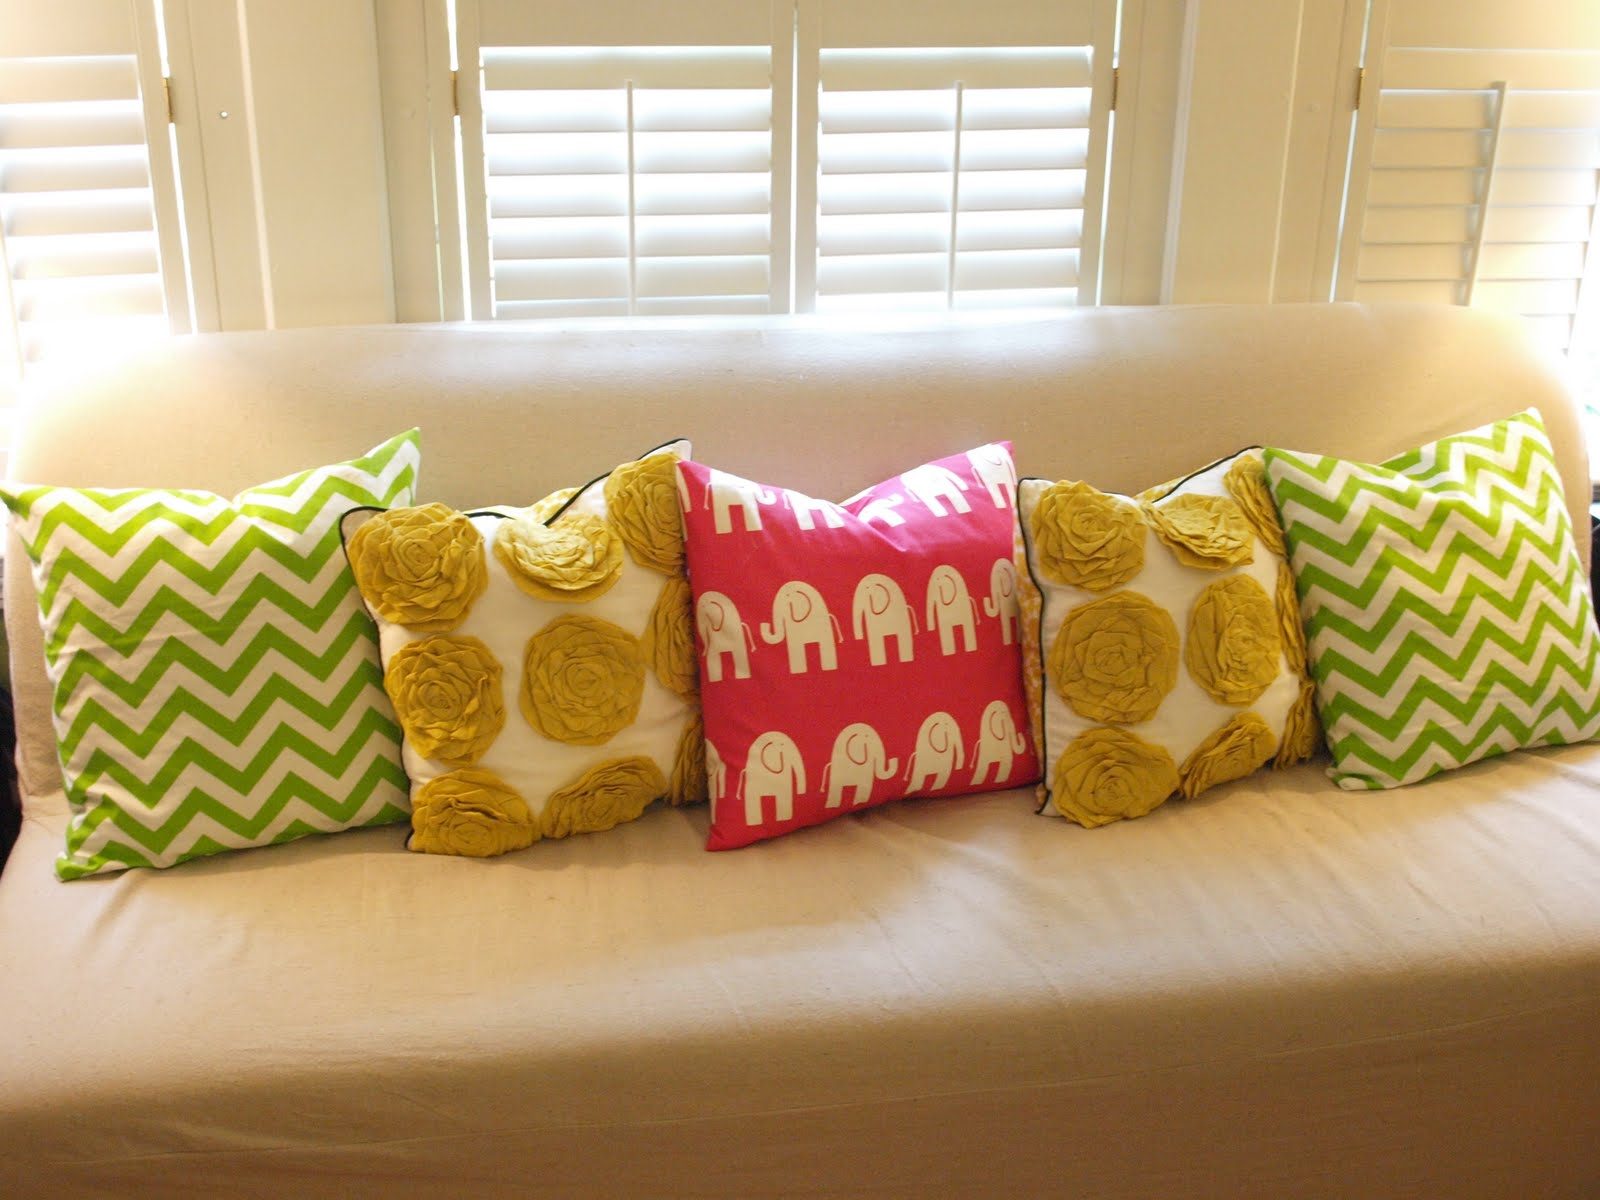 the Mathews Family Happenings Playroom pillow talk and the